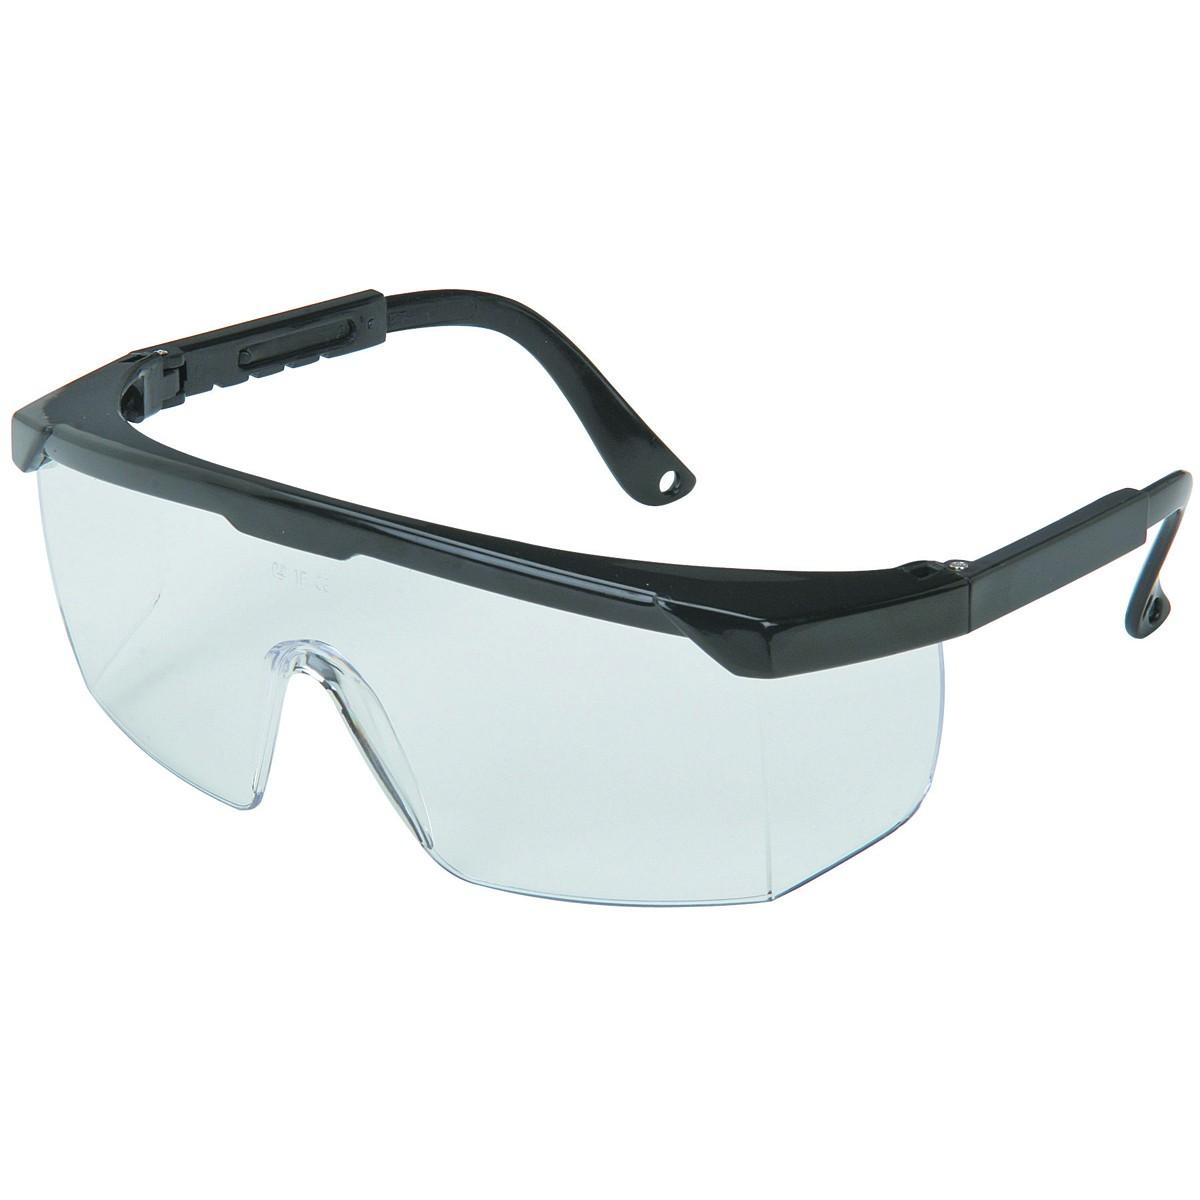 GLASSES SAFETY ADJUSTABLE ARMS (GS)